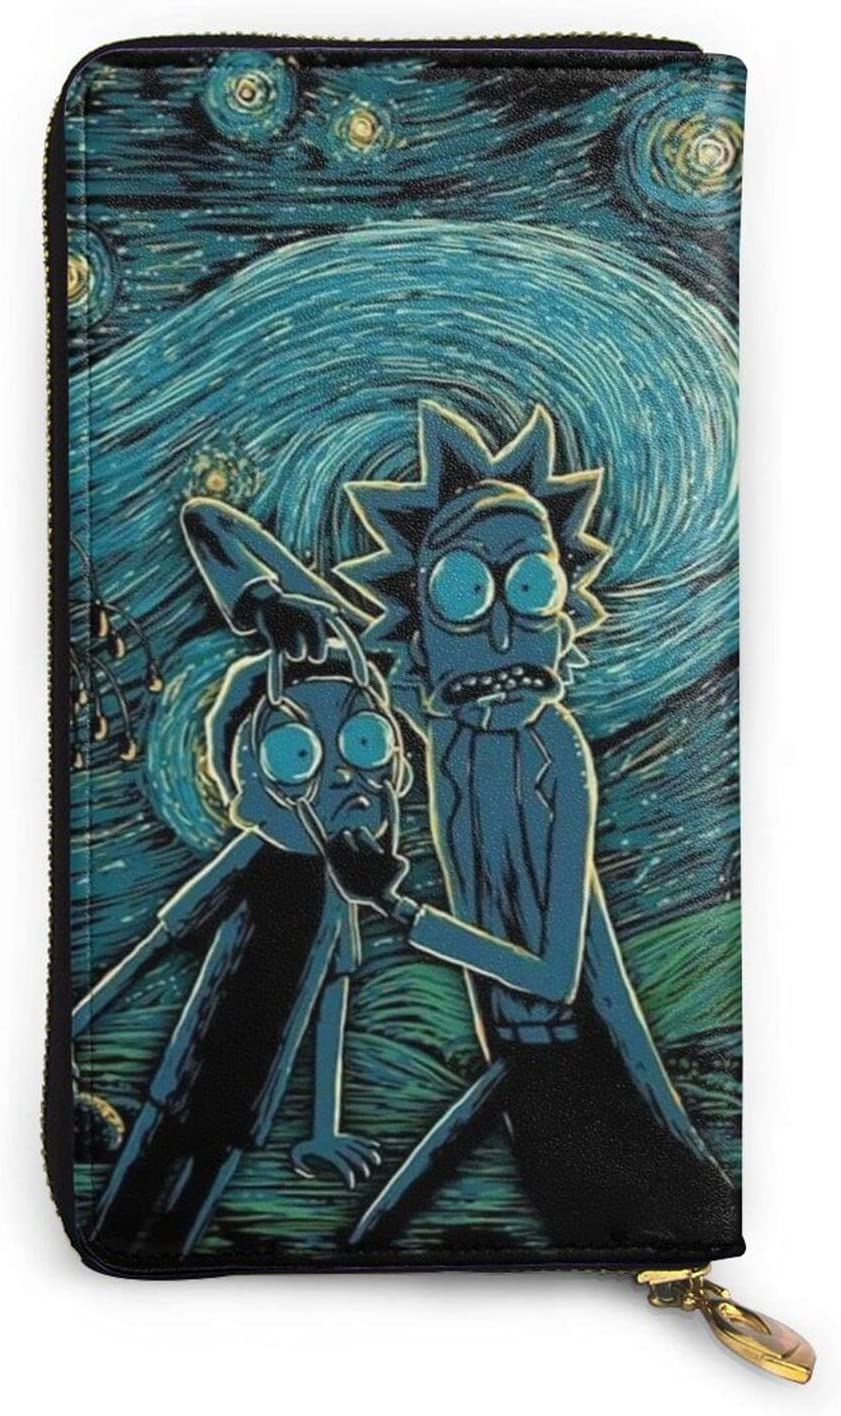 Rick Morty Wallet Cartoon Sale price OFFicial site Anime Fashion Men Leather Women